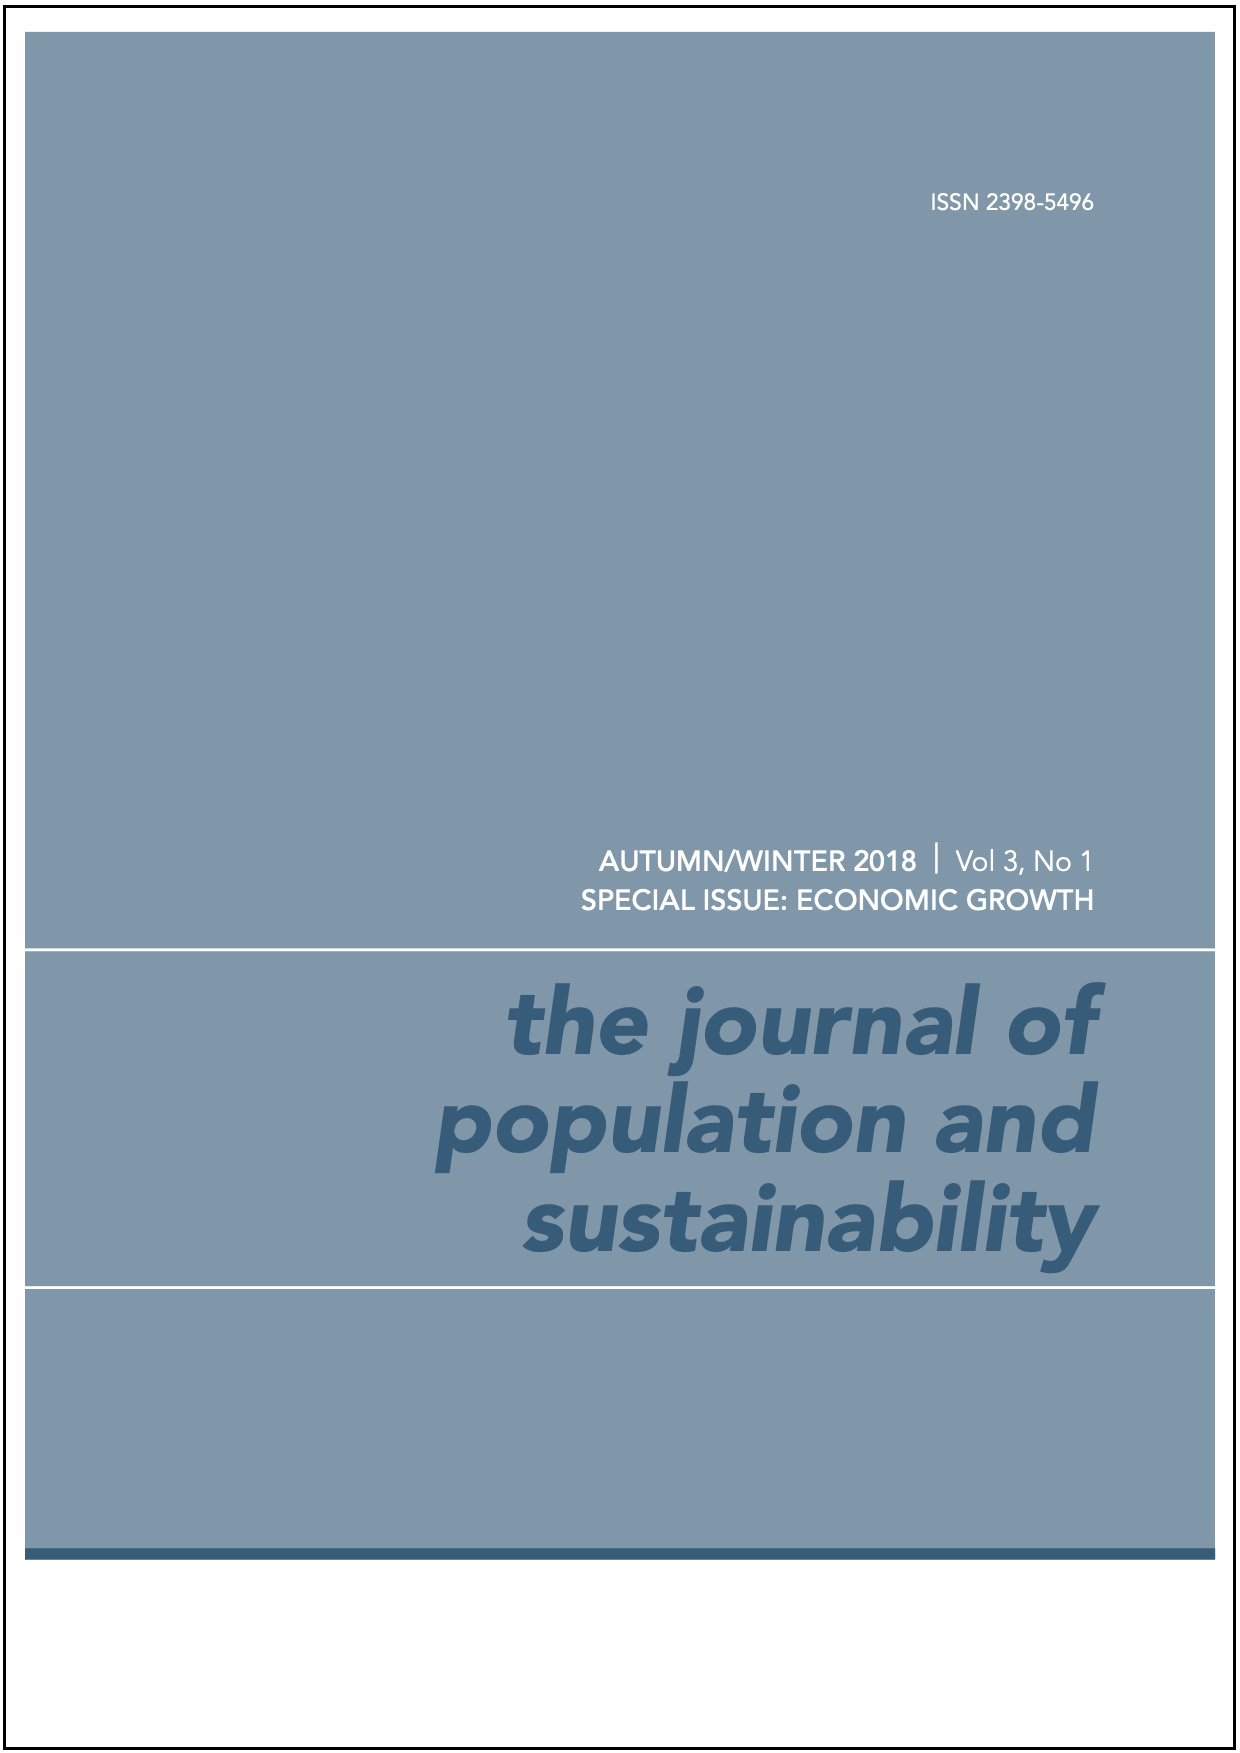 This image of the cover of this issue of The Journal of Population and Sustainability has the title in block letters on a grey-green background.